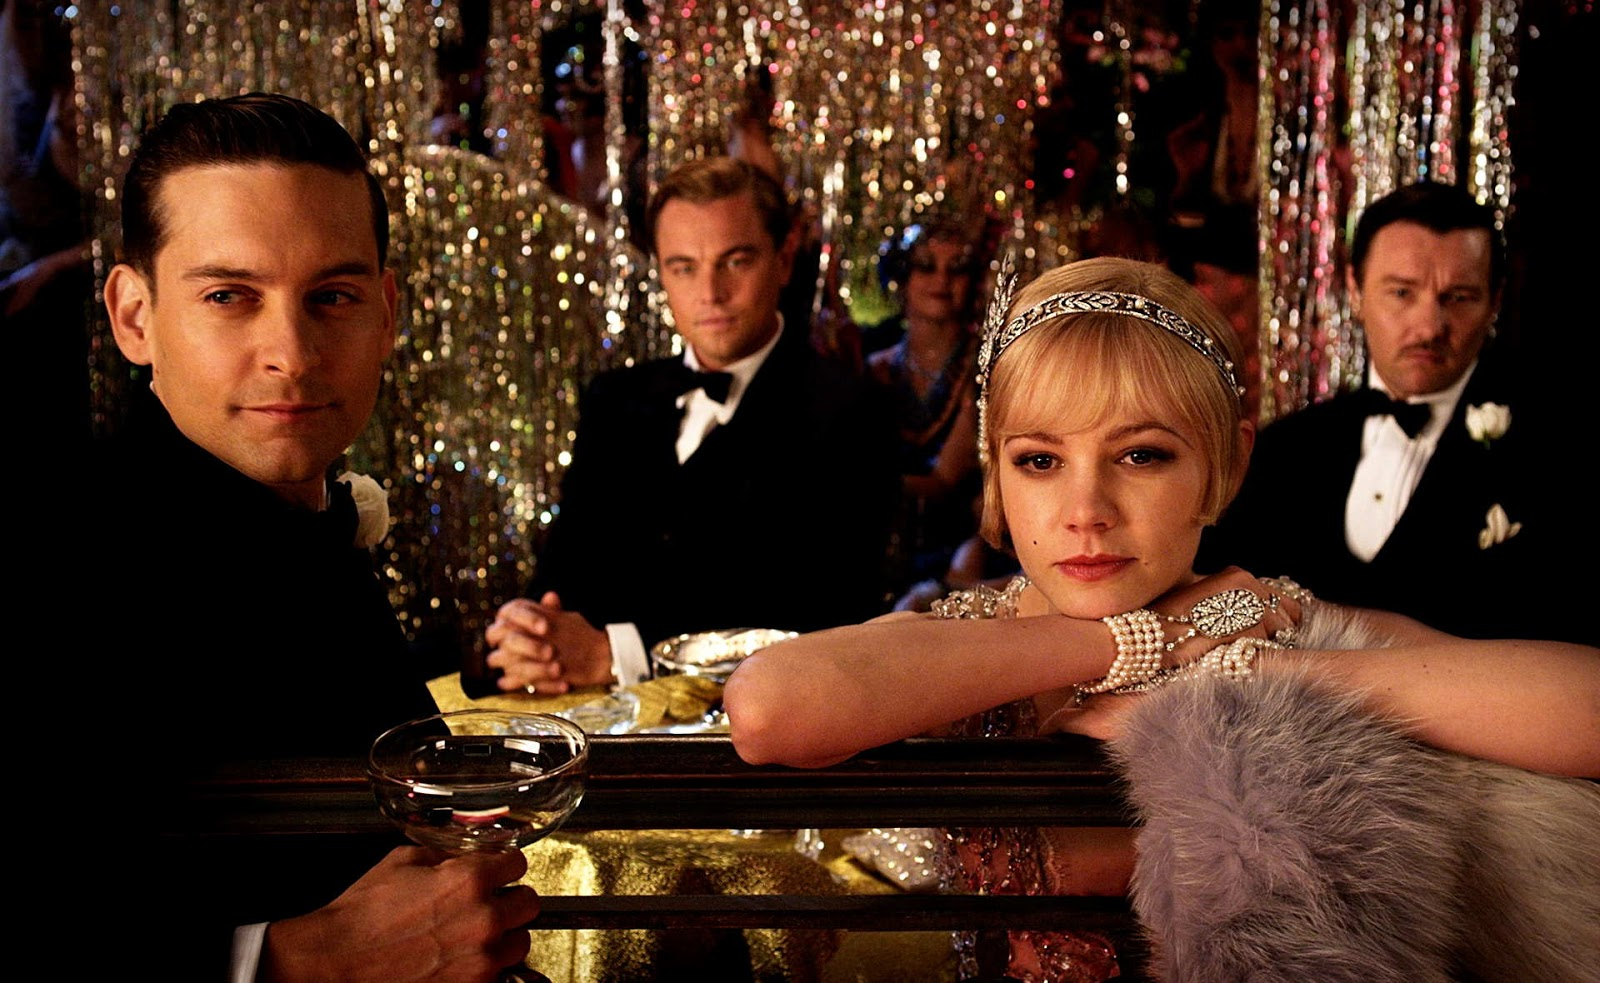 final gatsby The final line of the great gatsby is one of the most famous in american literature, and serves as a sort of epitaph for both gatsby and the novel as a whole so we beat on, boats against the current, borne back ceaselessly into the past.